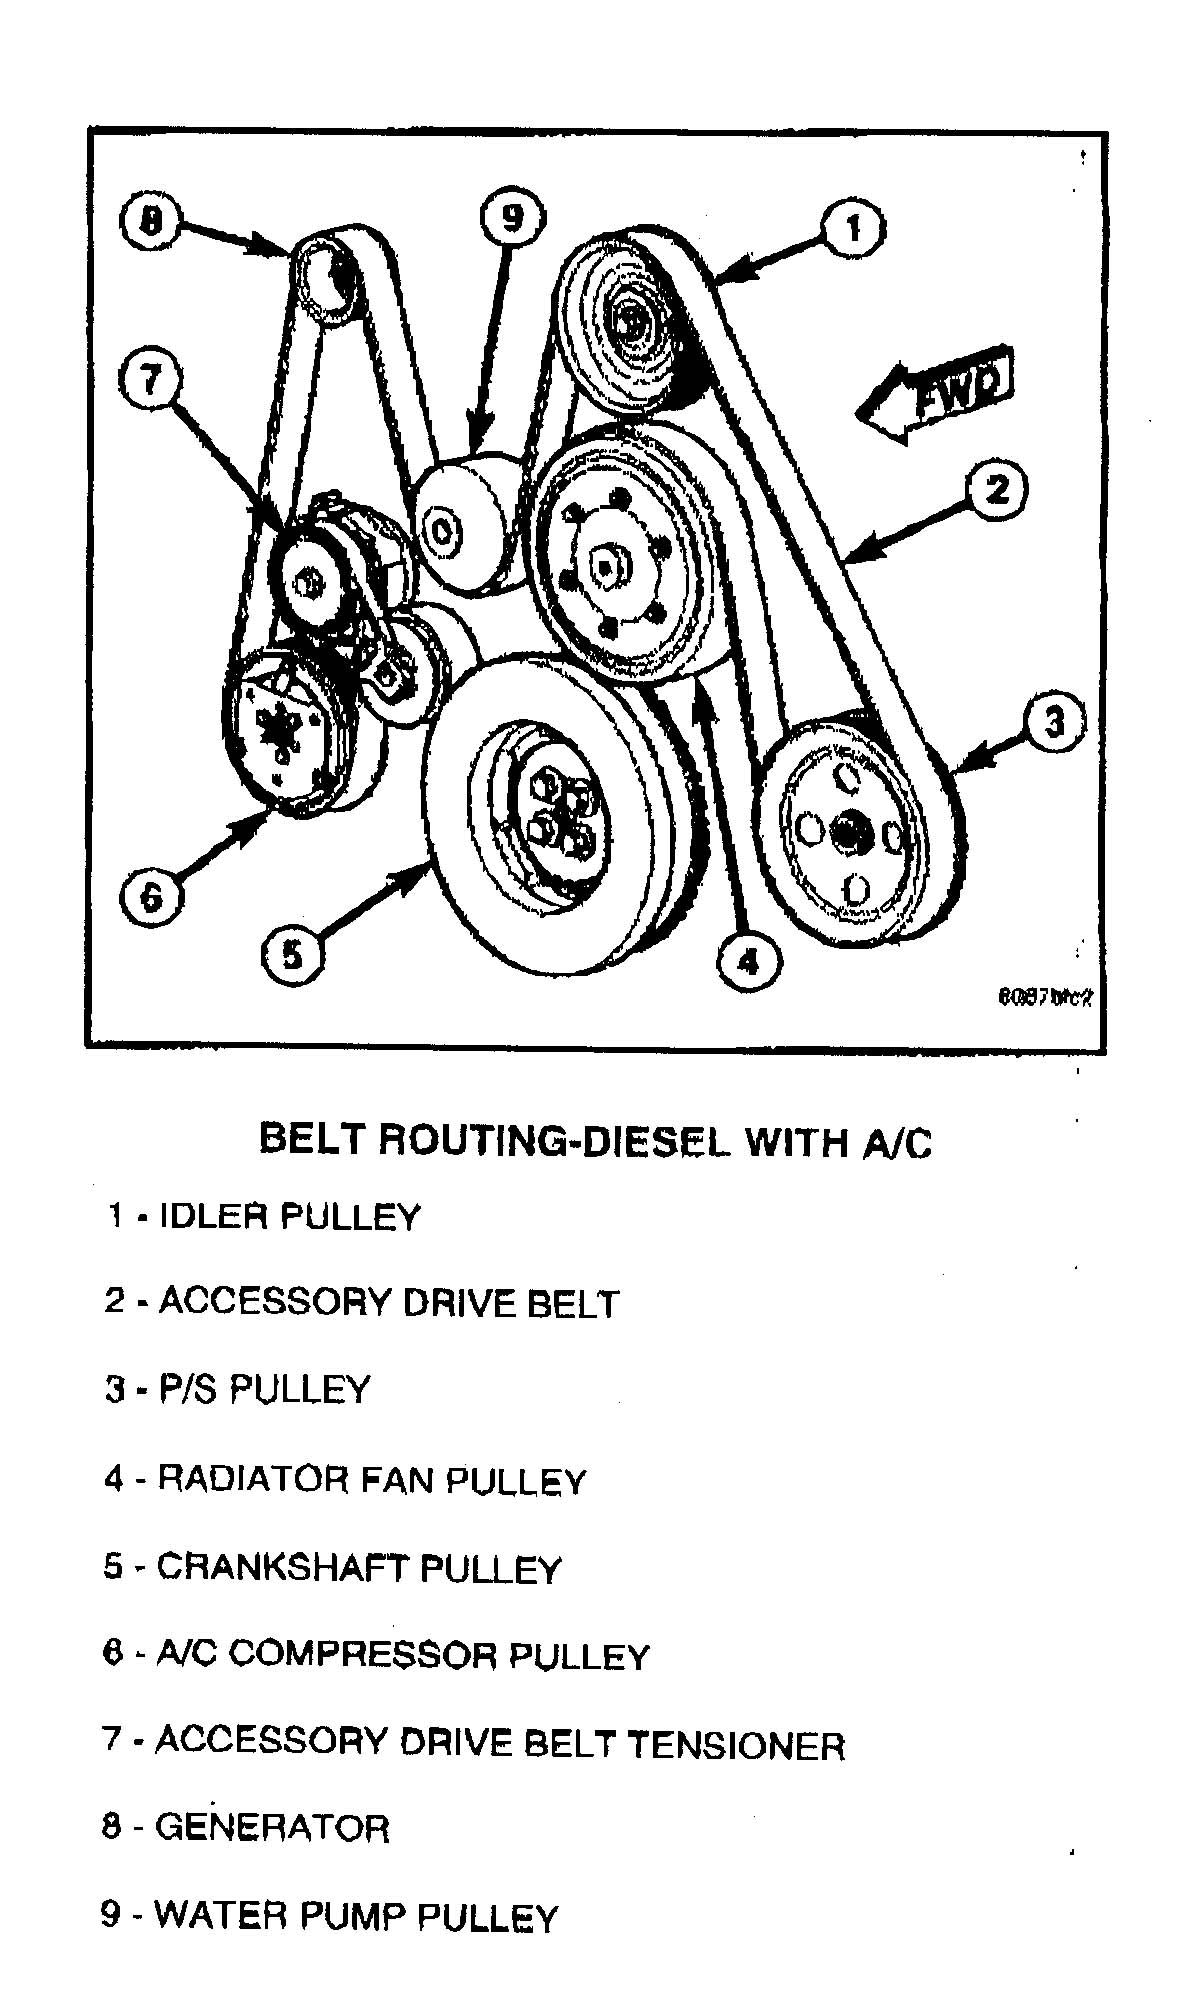 small resolution of 6 7 belt routing diagram dodge diesel diesel truck resource forums dodge diesel diesel